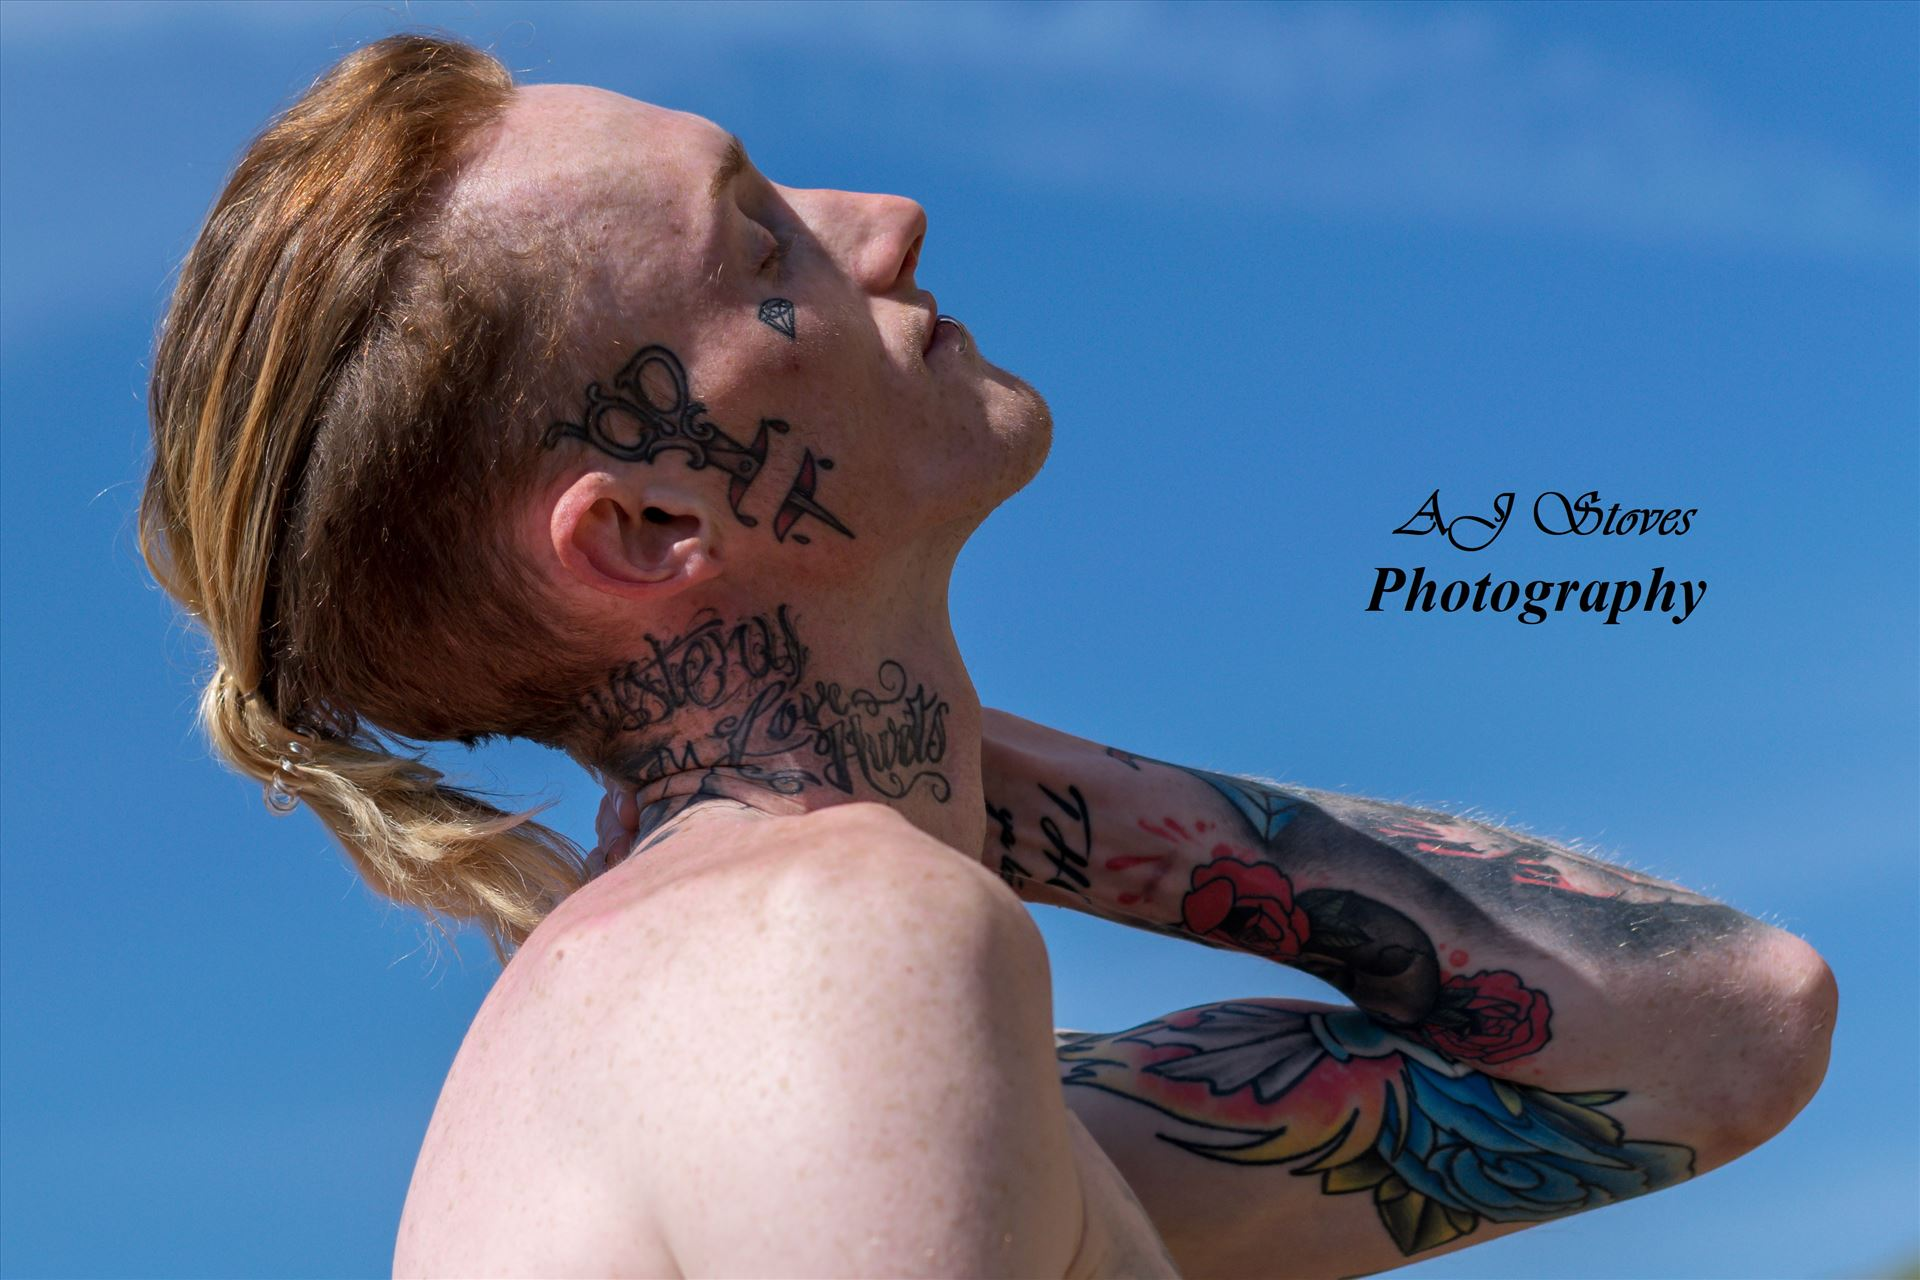 Luke Proctor 11 - Great shoot with Luke down Seaham Beach by AJ Stoves Photography